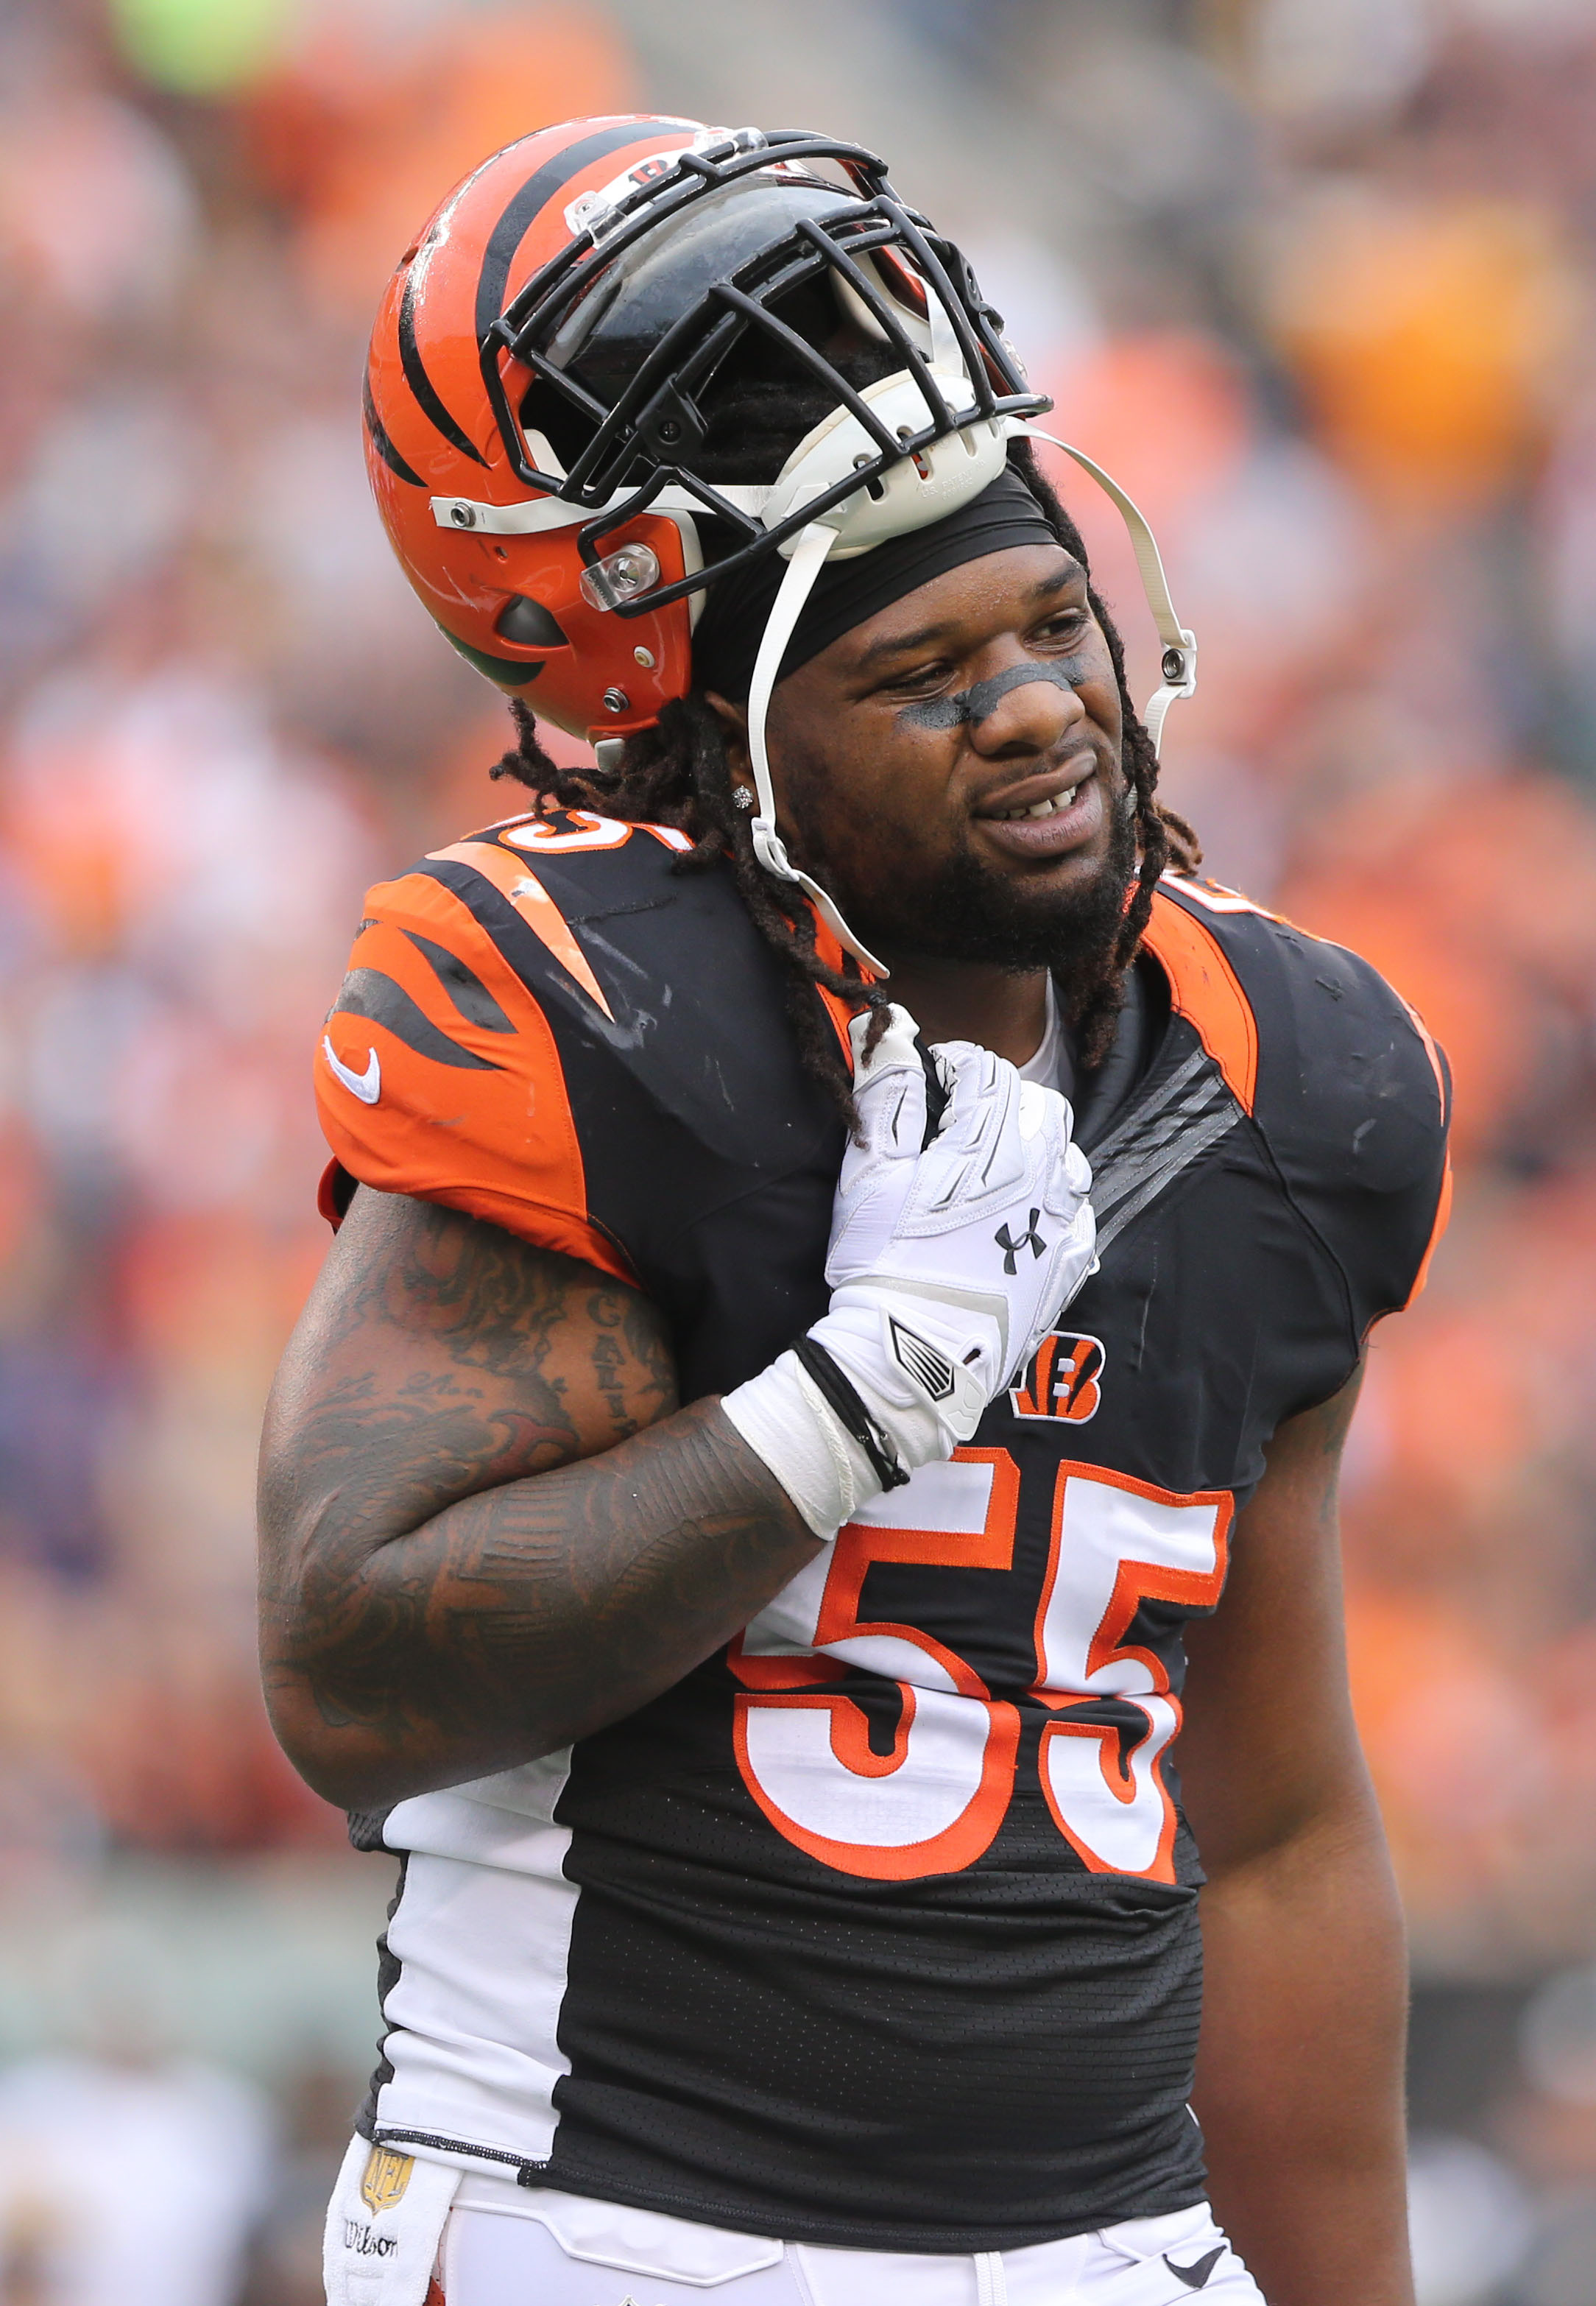 Vontaze Burfict Career Stats >> Vontaze Burfict Career Stats 2019 2020 Top Car Models